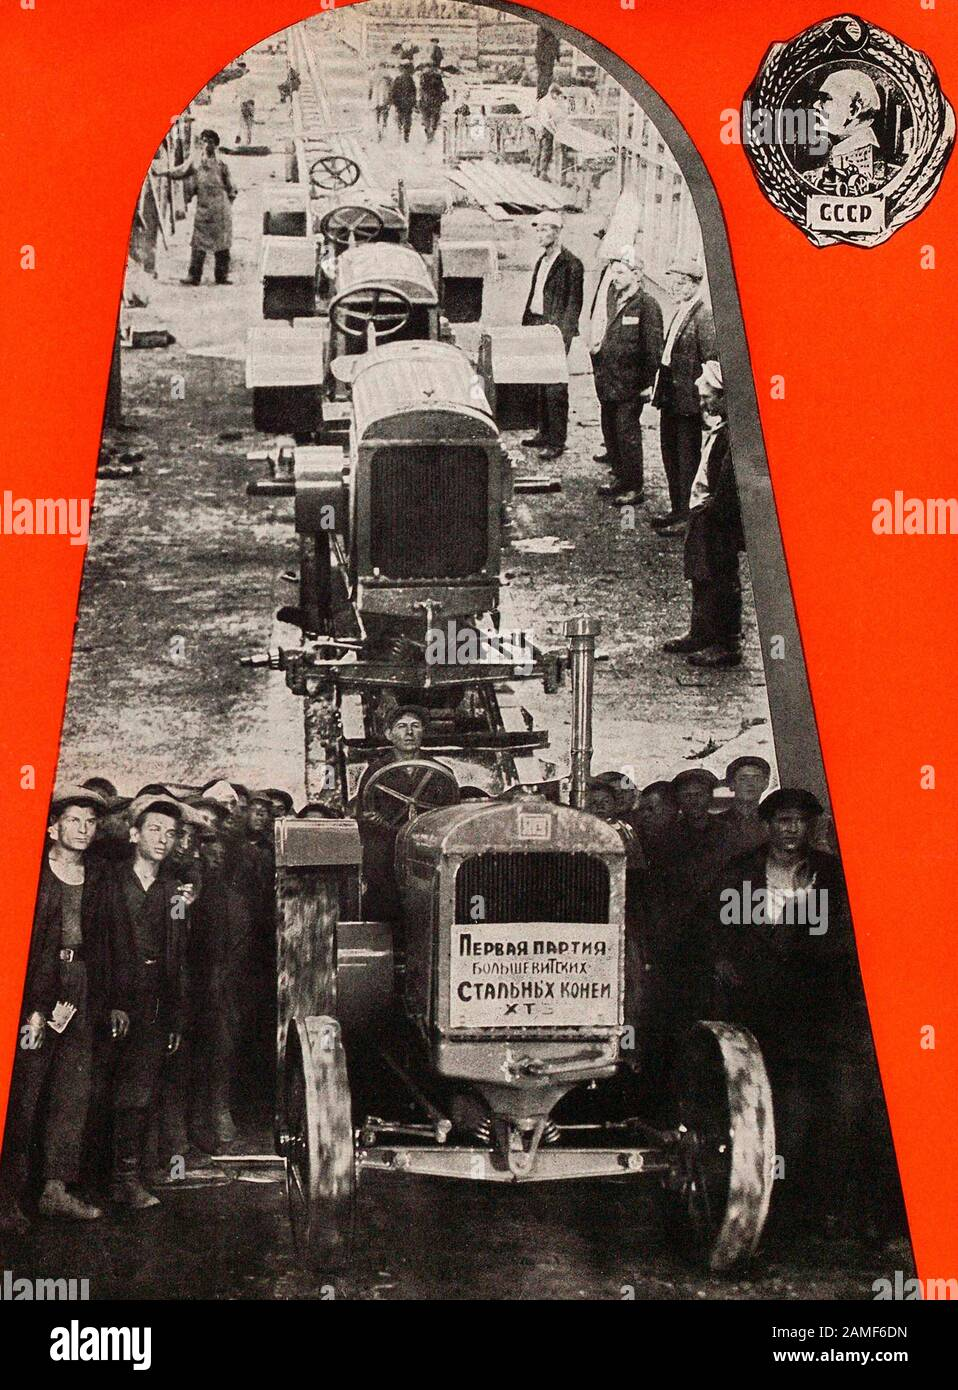 The life in Soviet Union in 1930s. From soviet propaganda book. The life in Soviet Union in 1930s. From soviet propaganda book. Stalingrad Tractor Pla Stock Photo